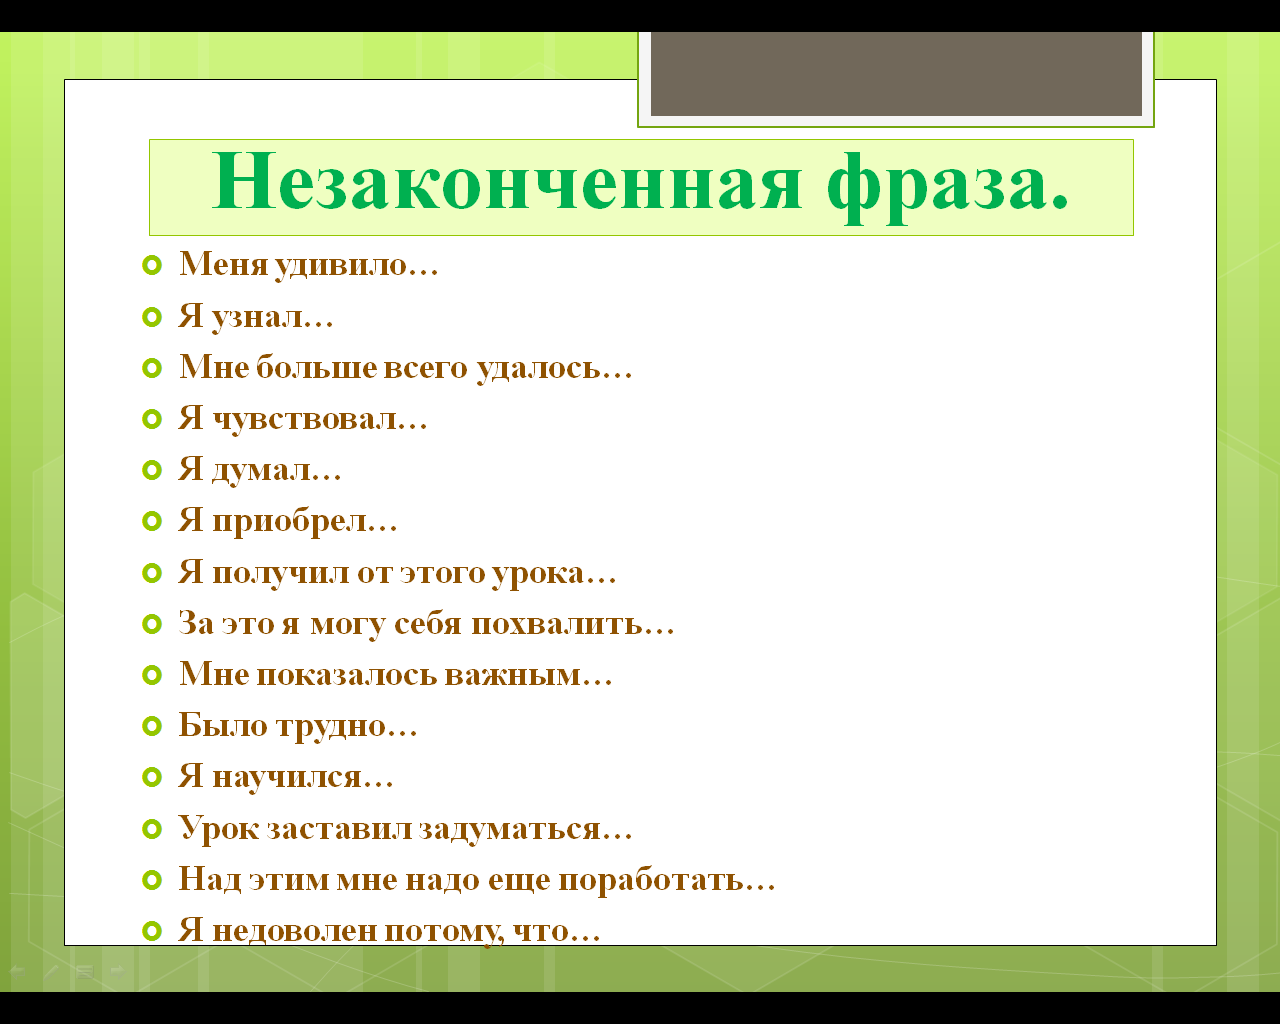 hello_html_13325020.png